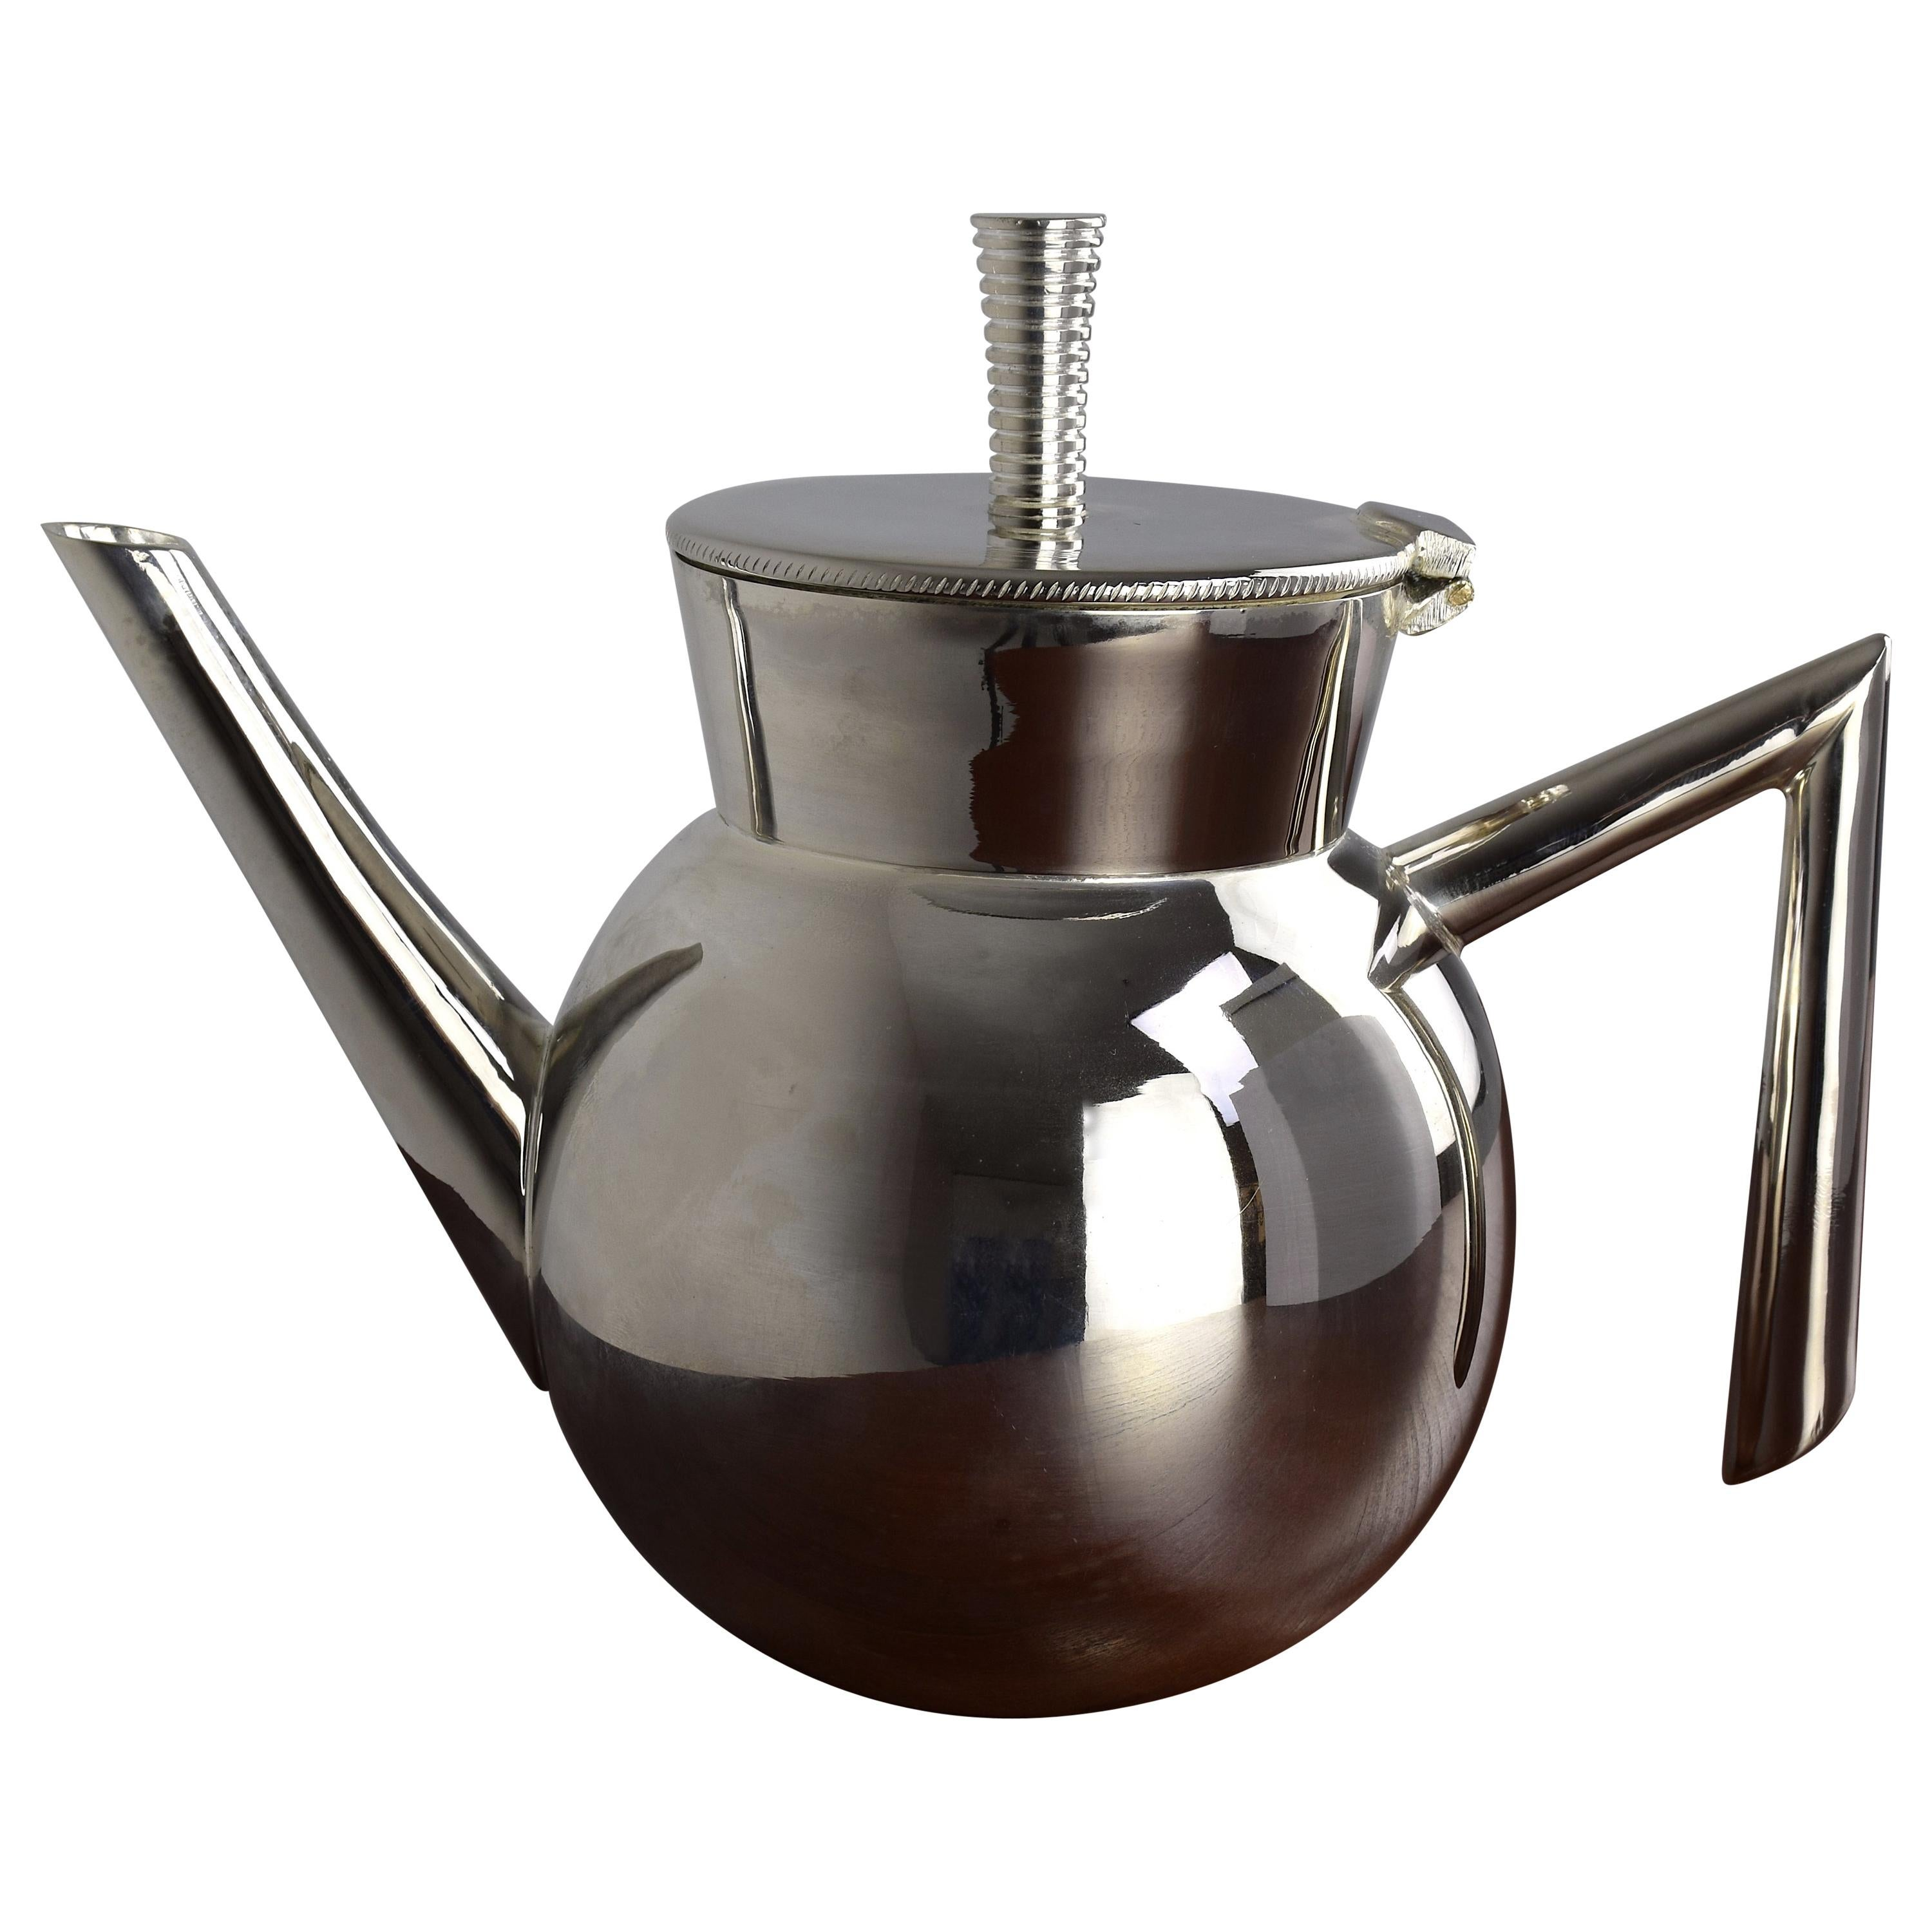 Contemporary Moroccan Teapot by Jonathan Amar